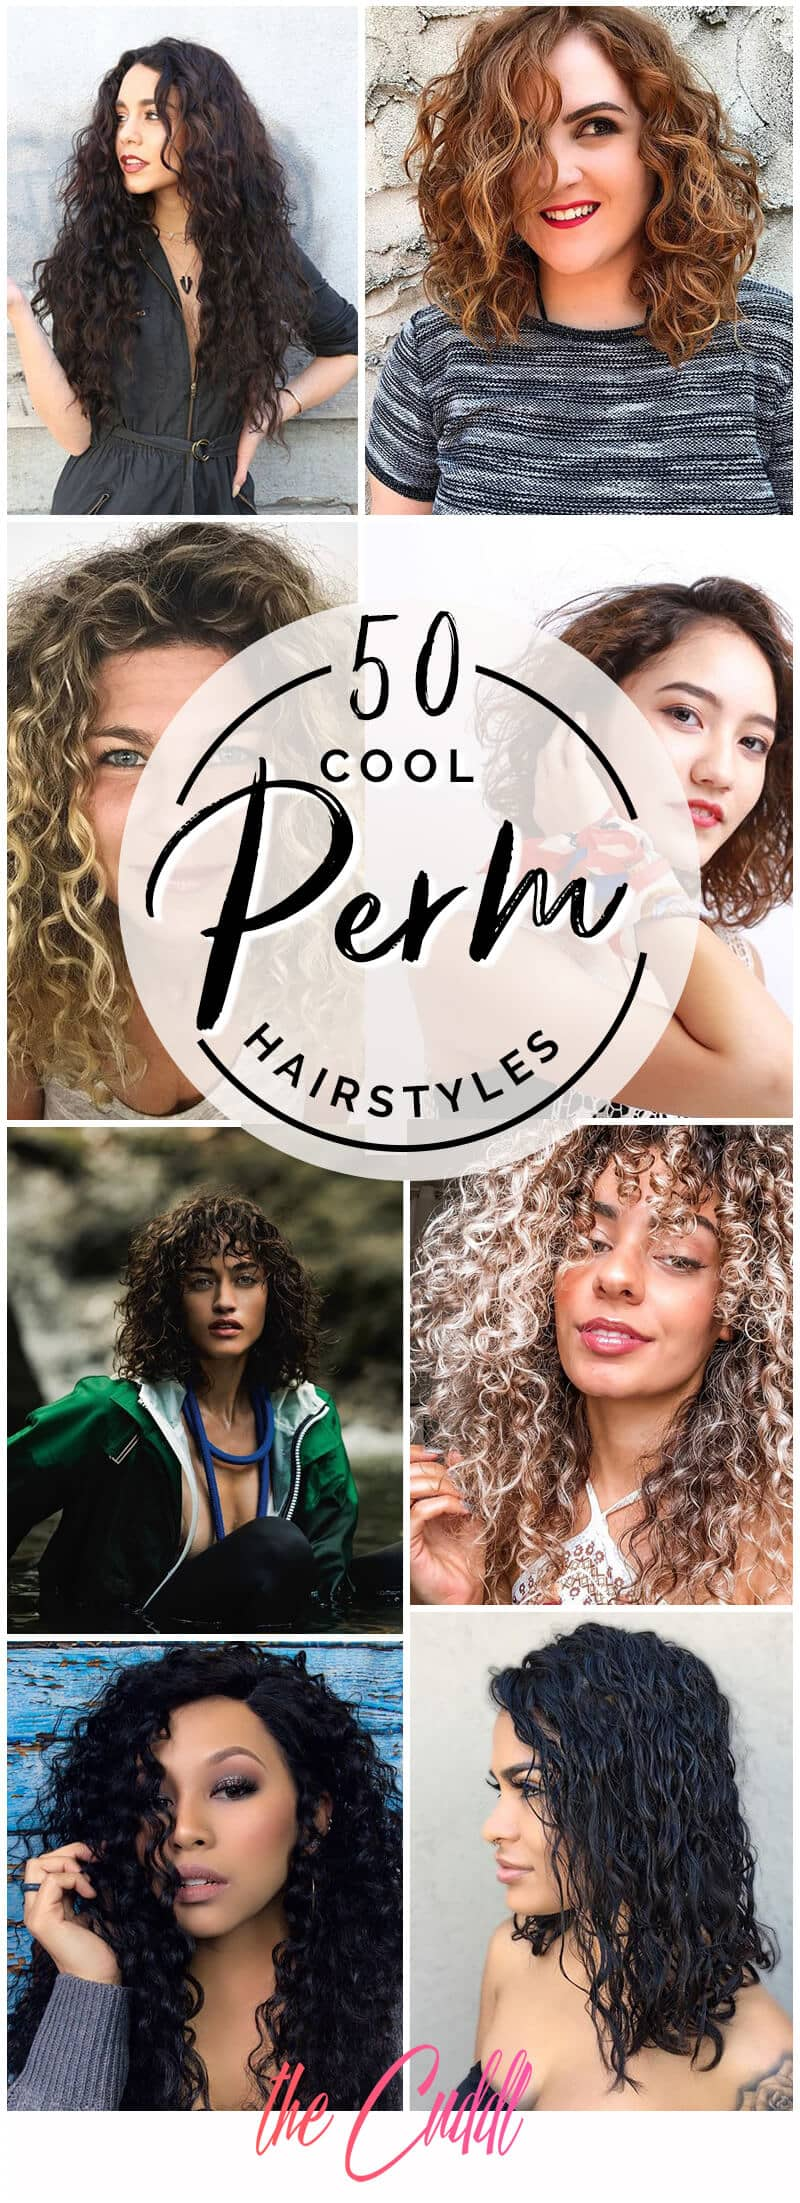 50 Stunning Perm Hair Ideas to Help You Rock Your Curls